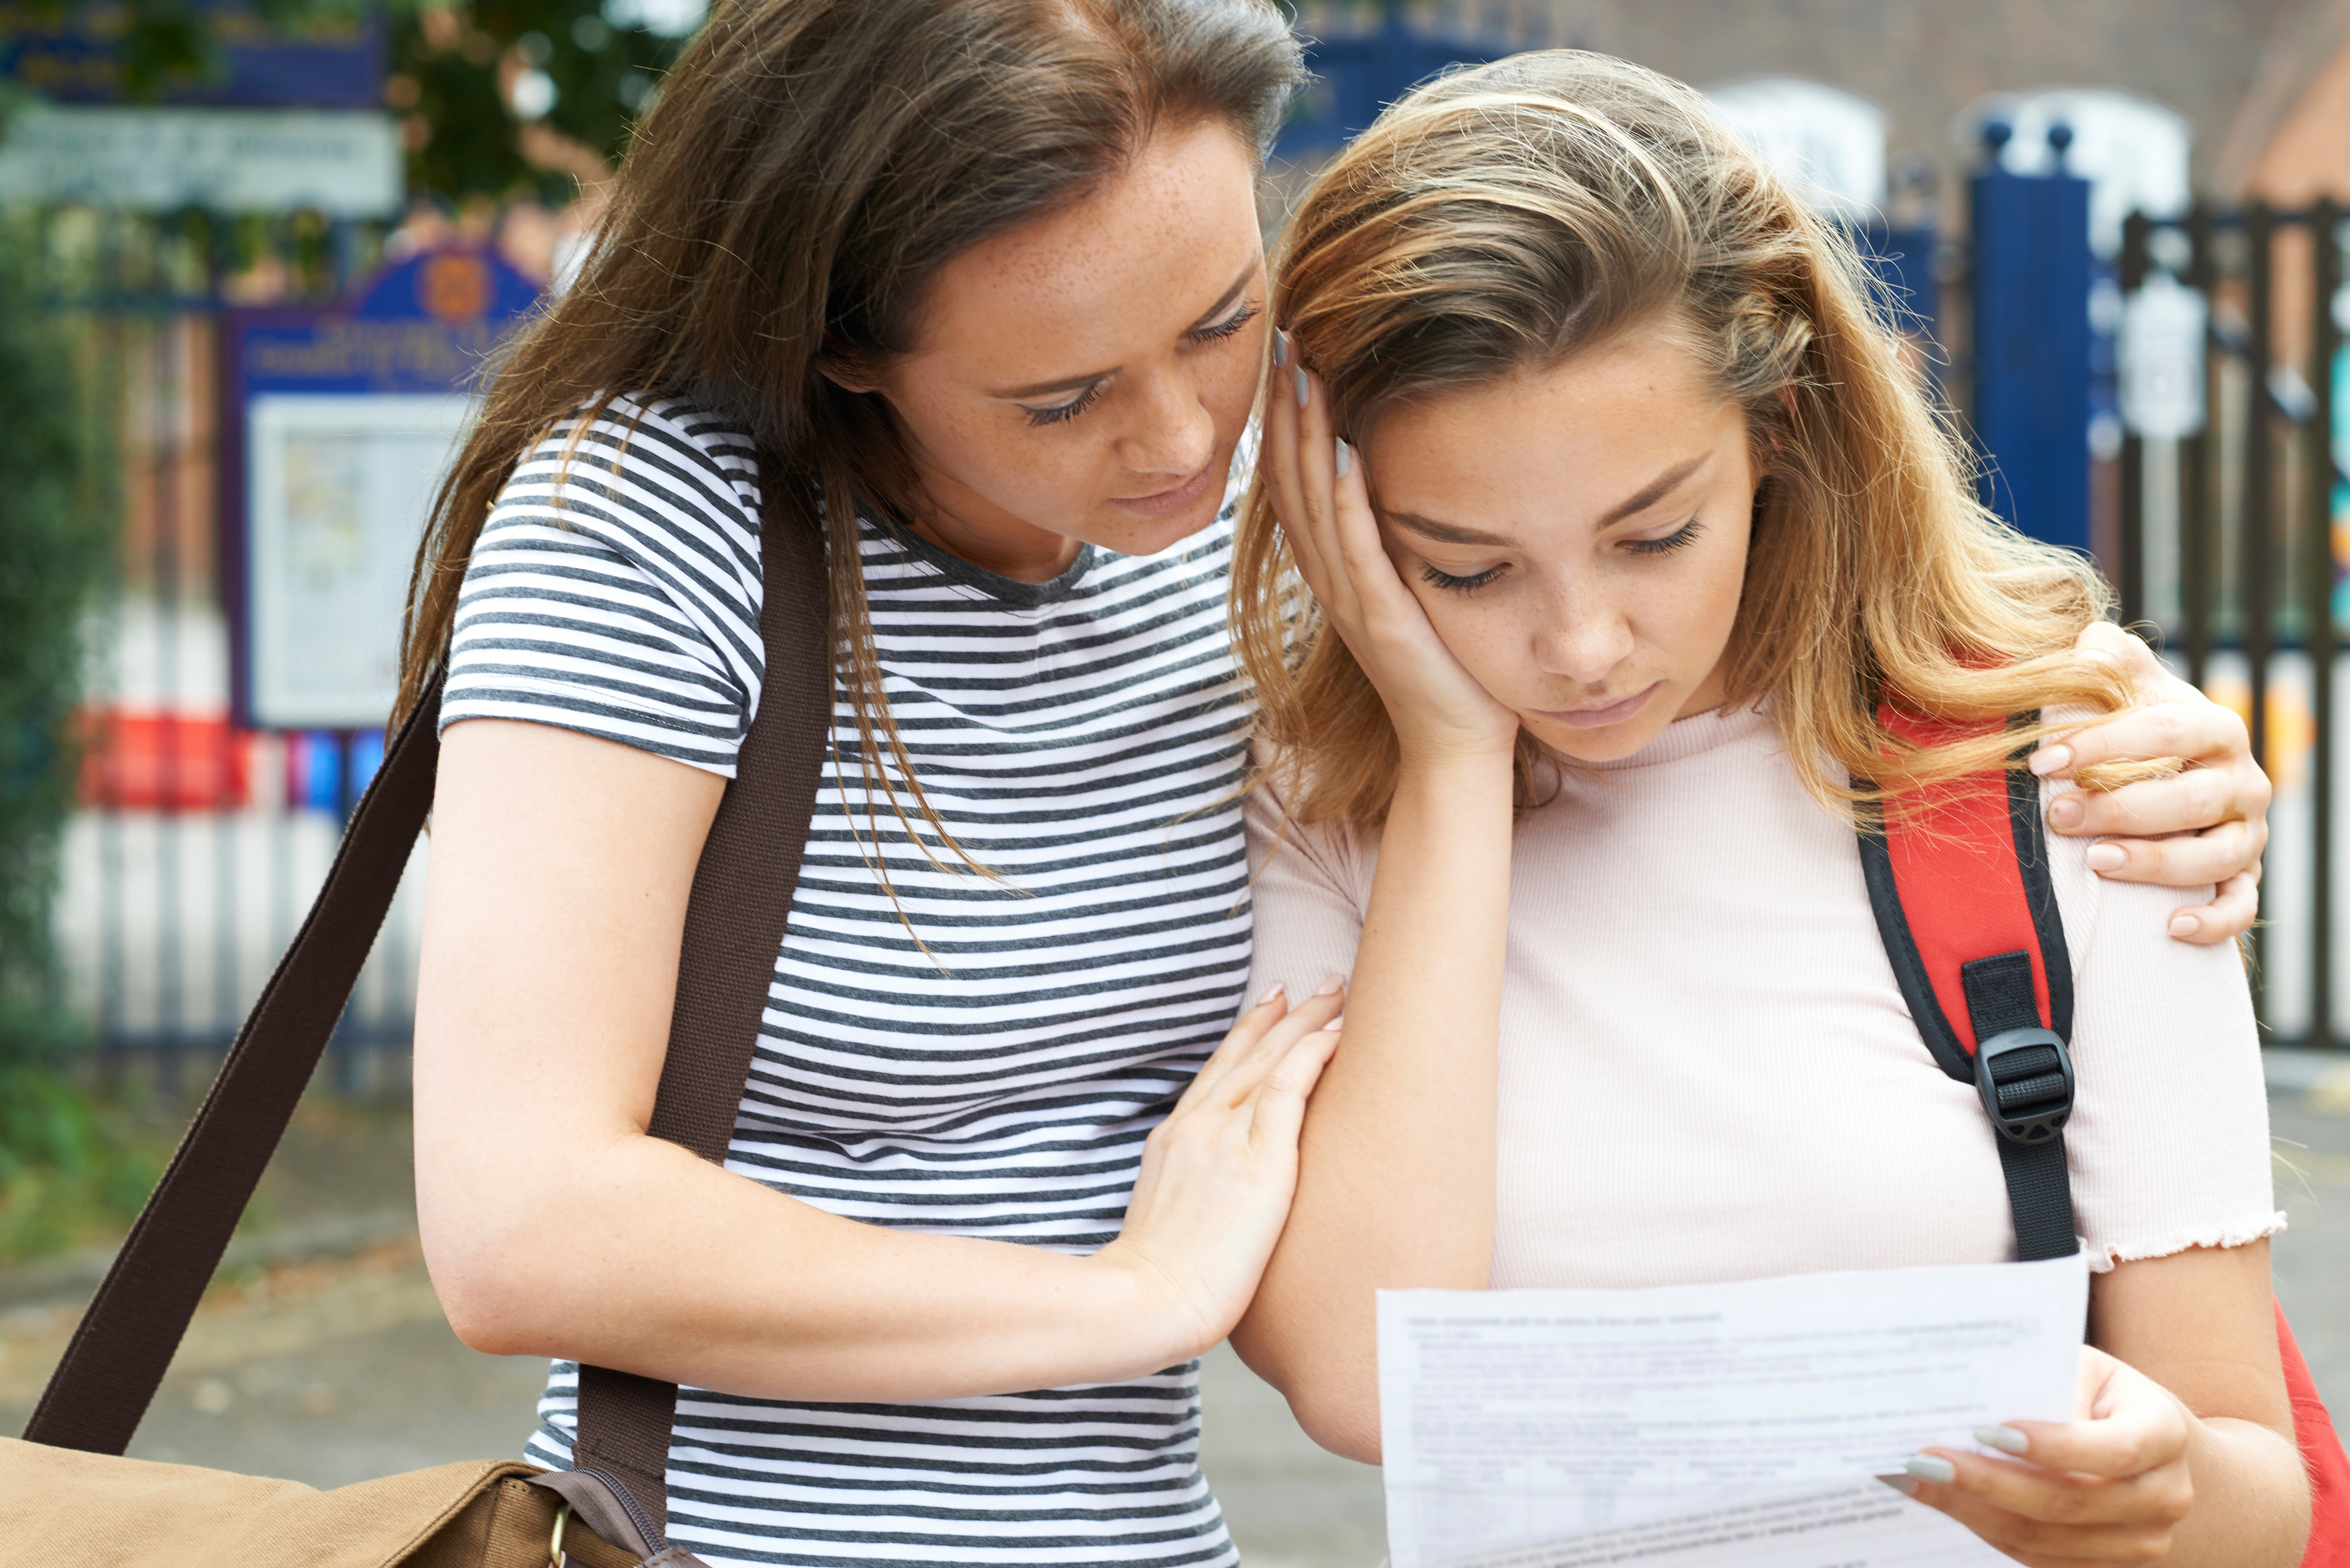 gcse results day 2020 - photo #36